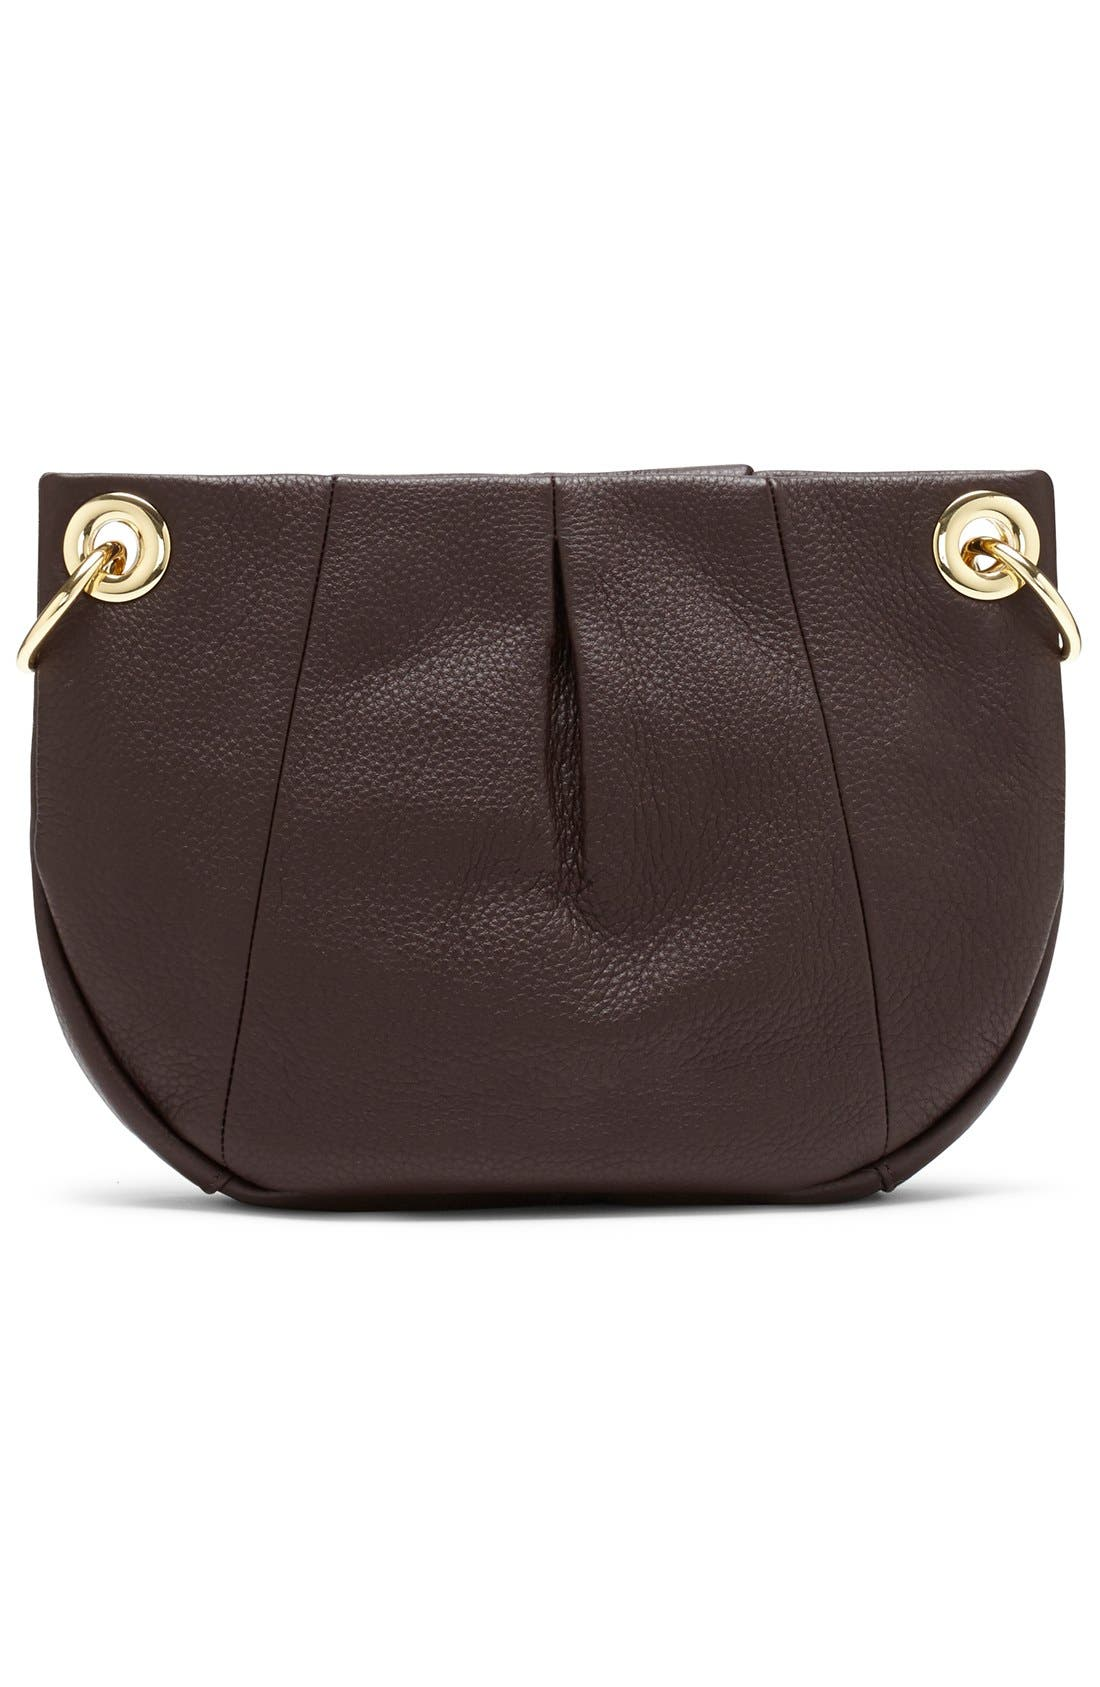 Alternate Image 2  - Vince Camuto 'Cristina' Crossbody Bag